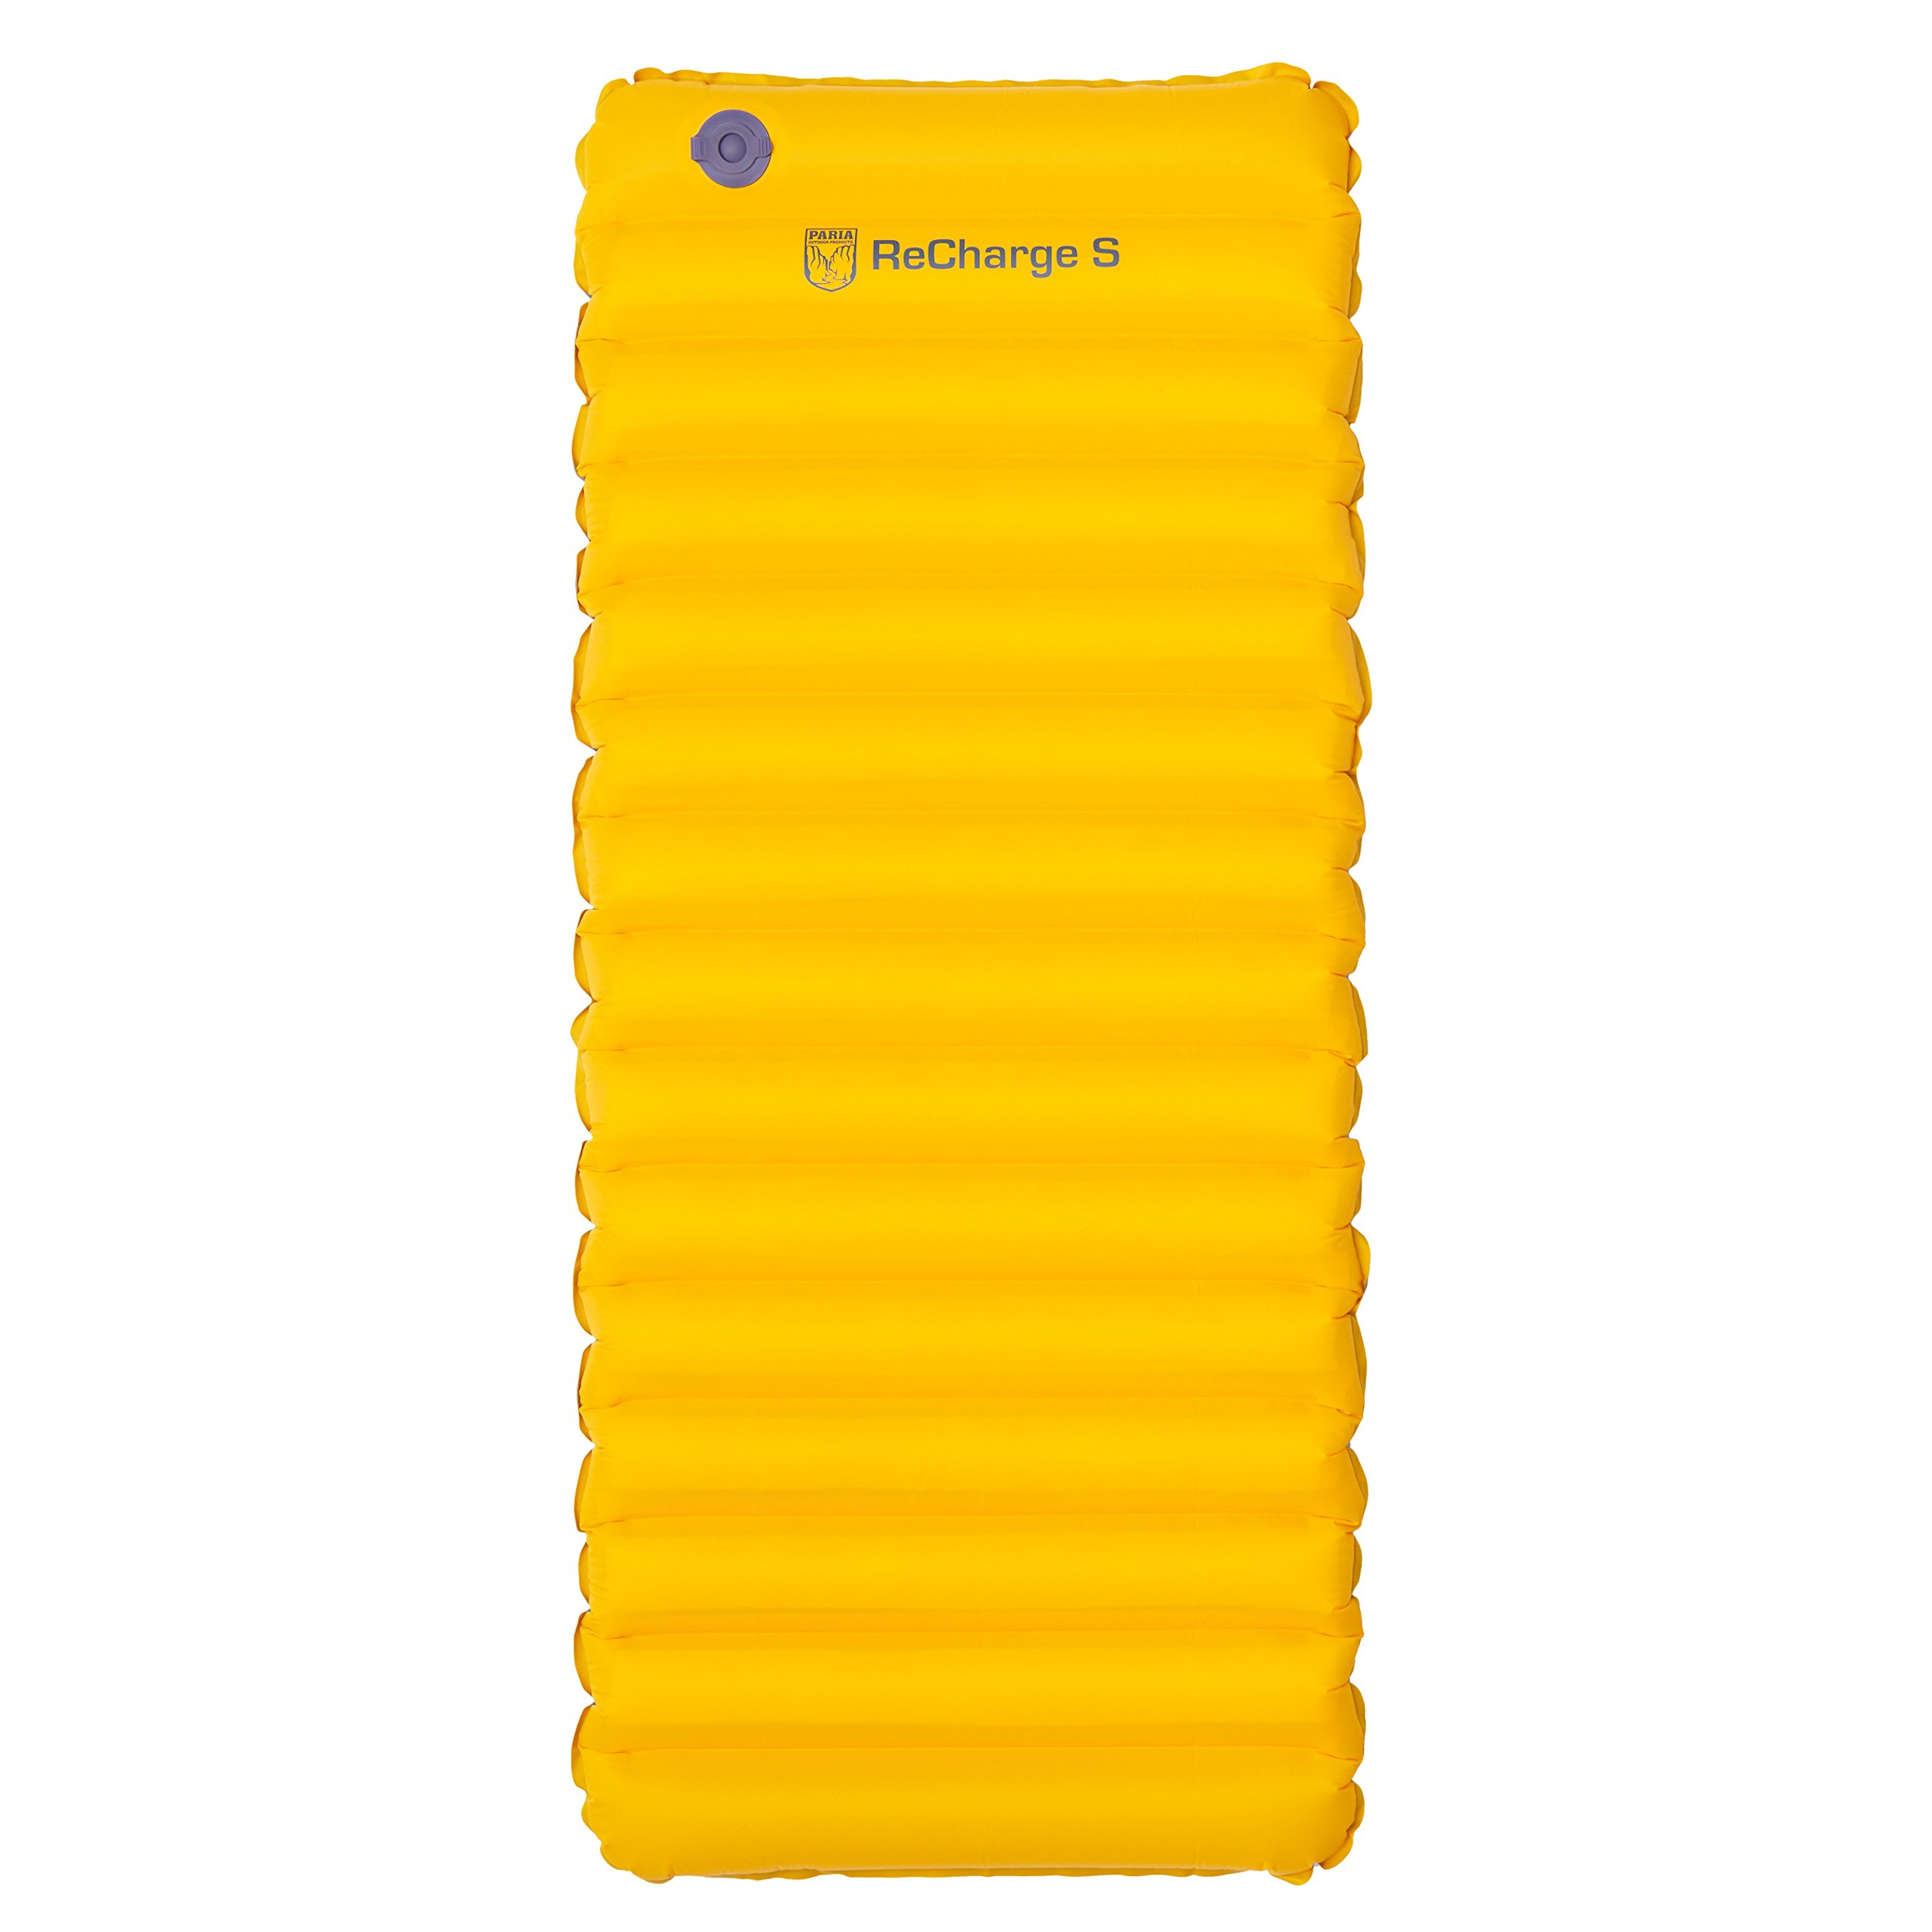 Paria Outdoor Products Recharge Sleeping Pad - Ultralight, Insulated Air Pad - Perfect for Backpacking, Bikepacking, Kayaking and Camping (Recharge S) by Paria Outdoor Products